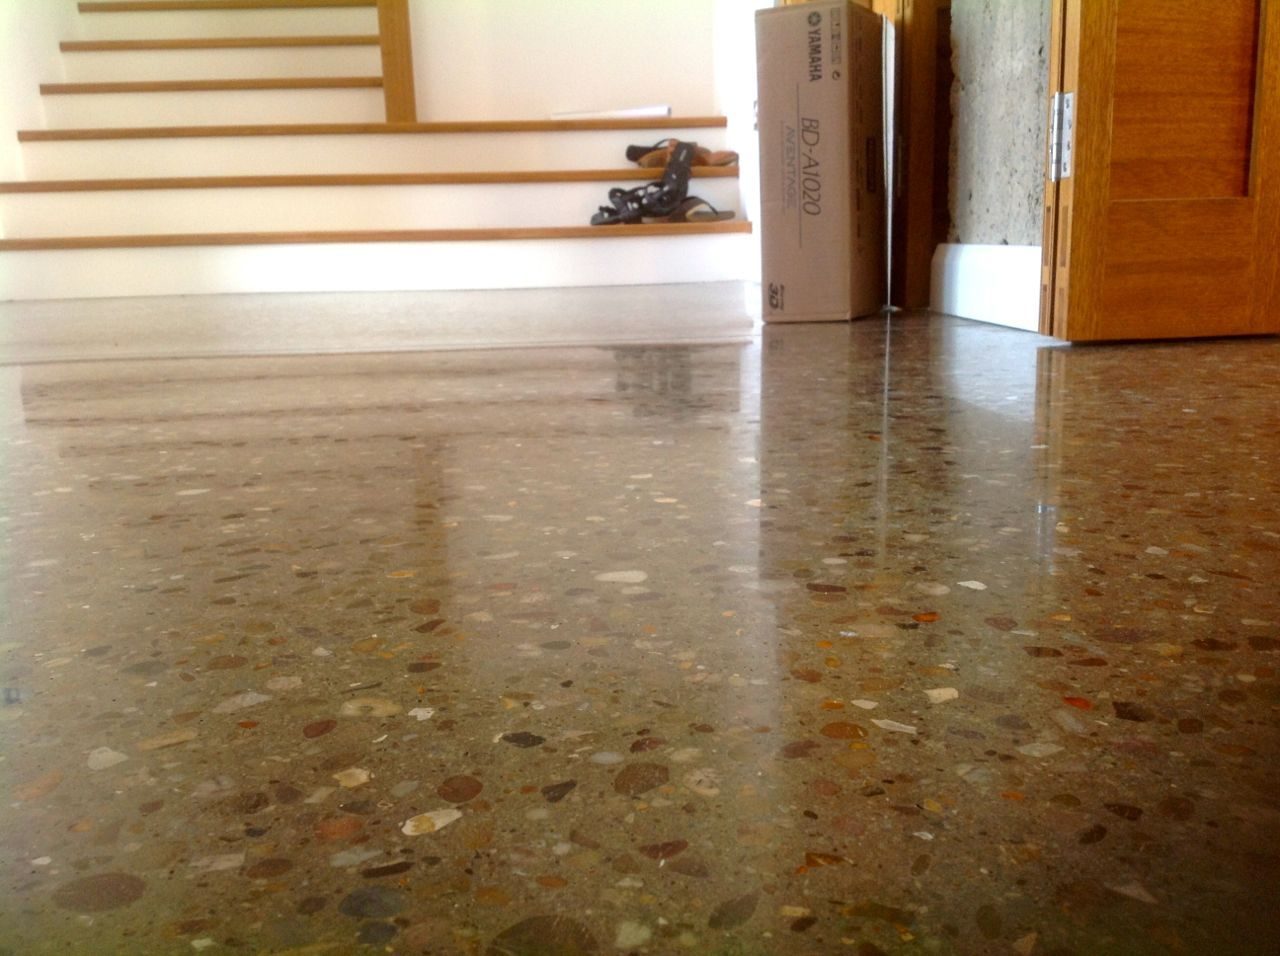 Charming Design Of Polished Concrete Floors To Decorate Indoor House With Natural Stones Concrete Floors Polished Concrete Concrete